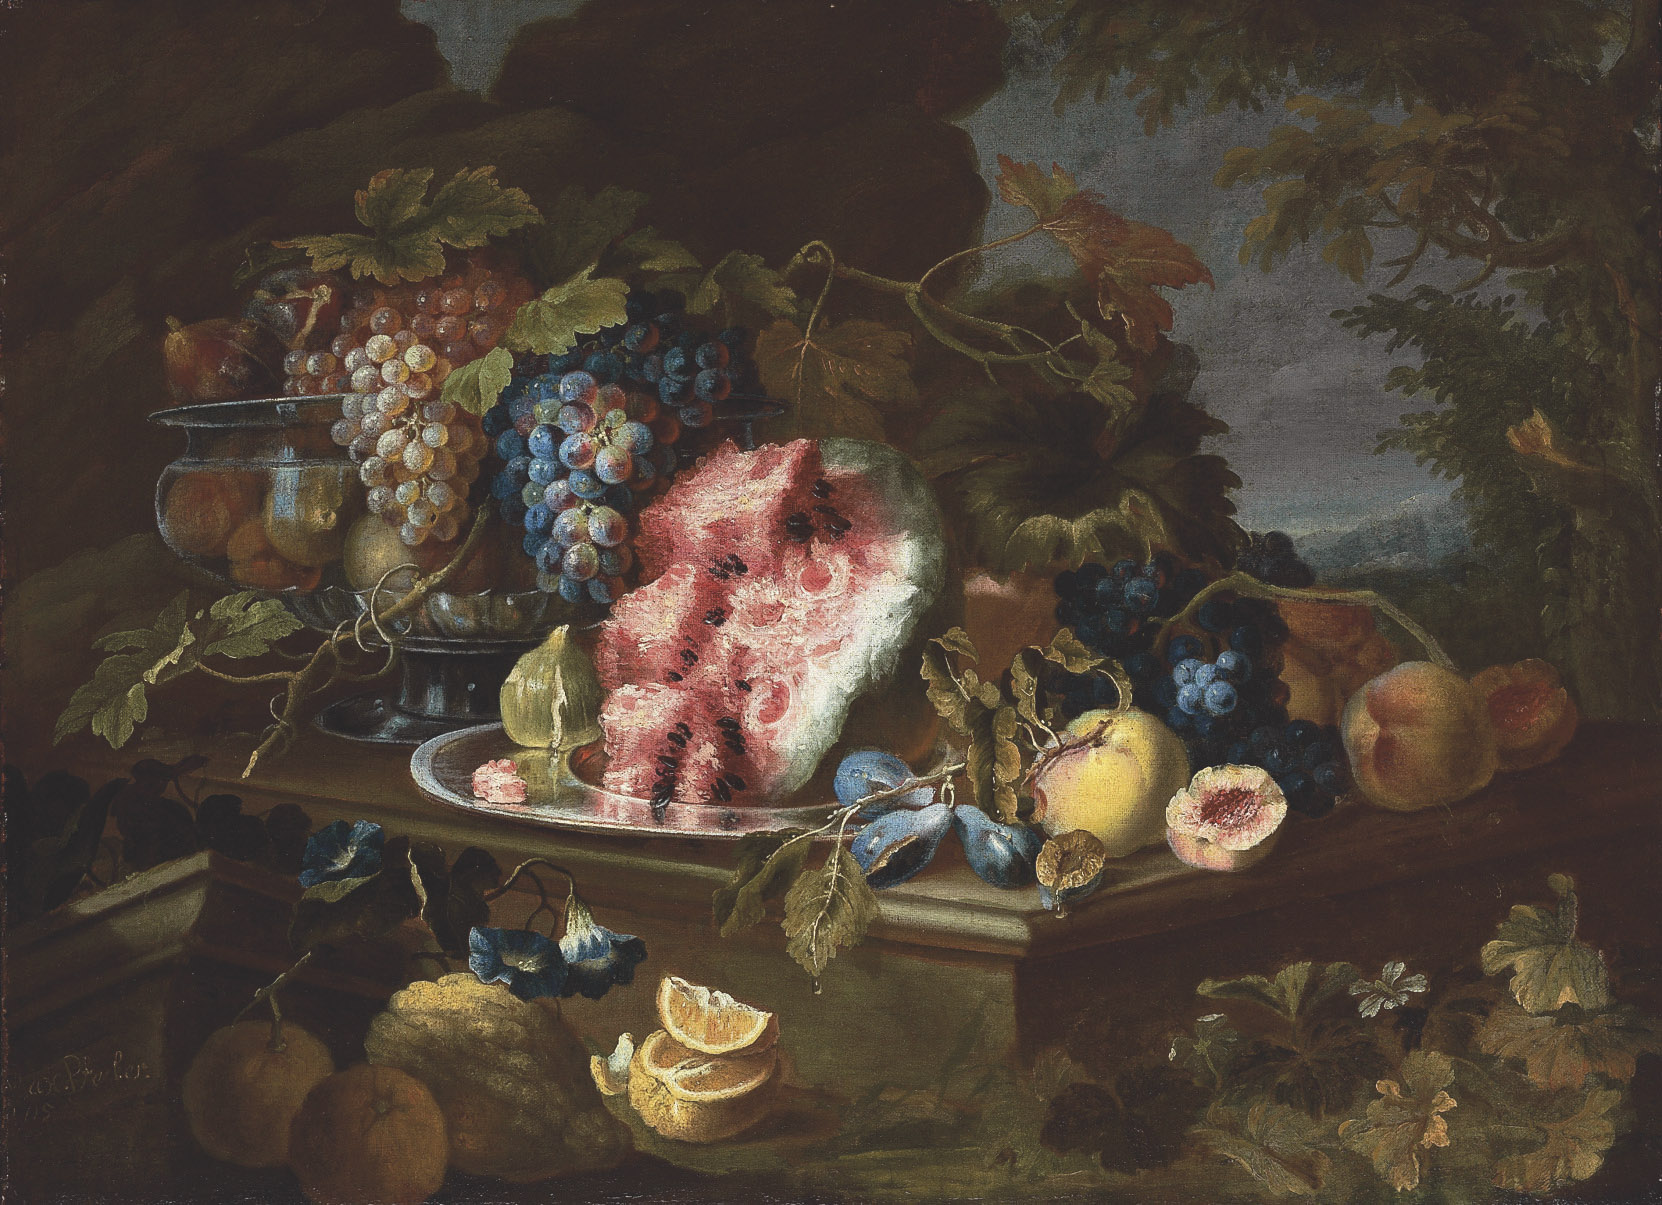 Lemons, pears, a fig, a watermelon, plums, and grapes in a metal vessel on a stone table